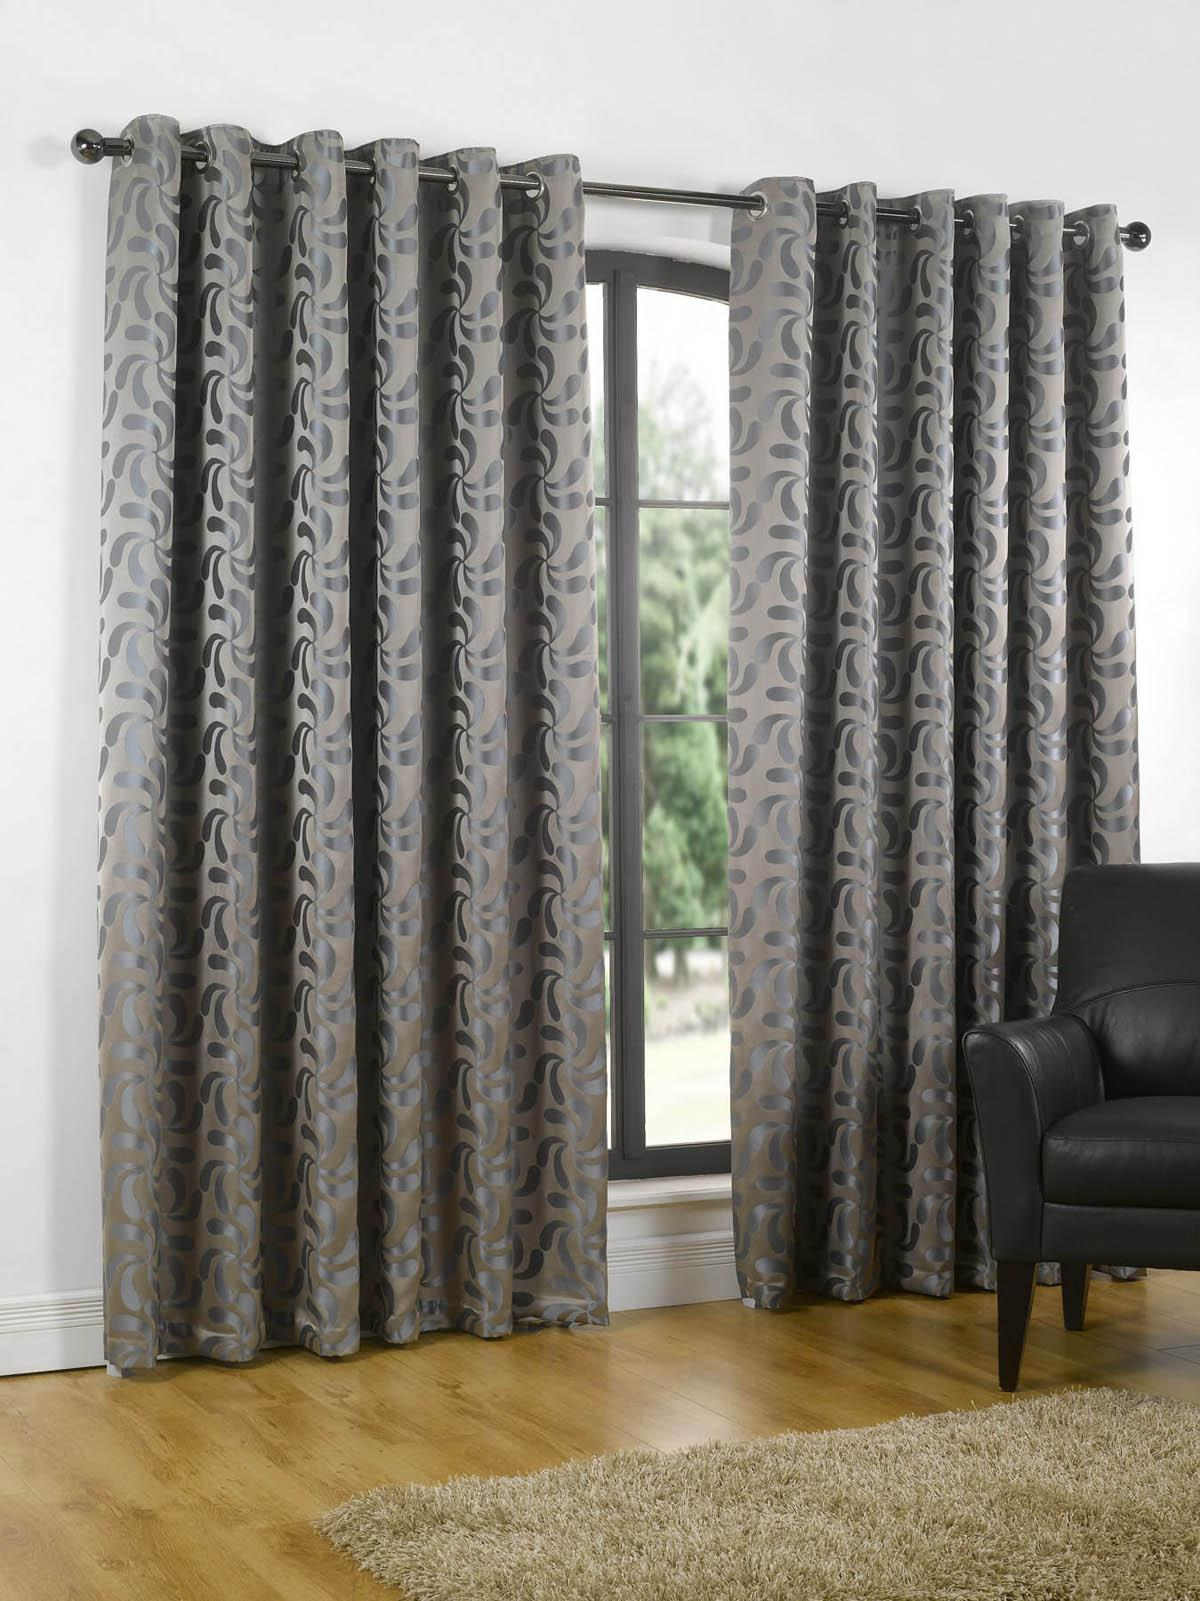 Texcraft Ready Made Curtains Erin Lined Eyelet Ready Made Curtains Steel Picture